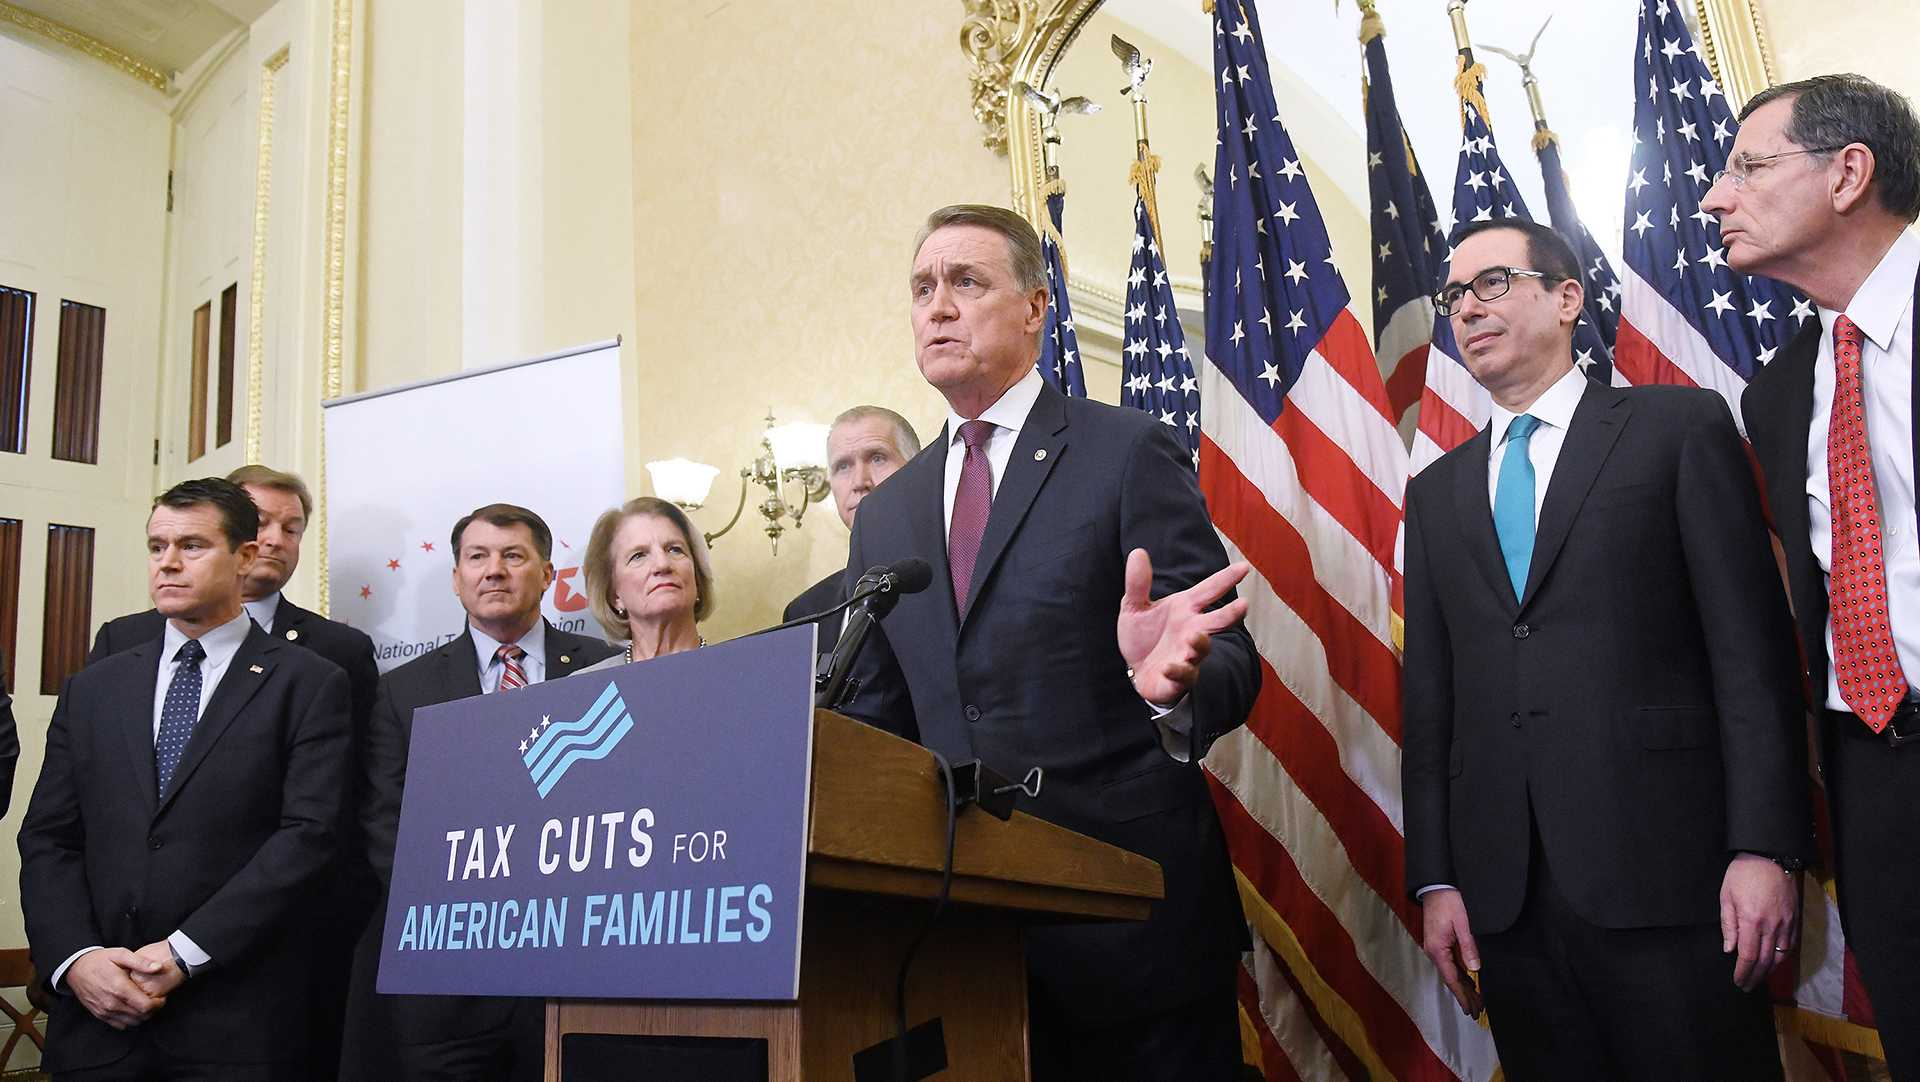 Republican Sen. David Perdue, with other GOP senators and Treasury Secretary Steven Mnuchin, speaks during a news conference on tax reform at the Capitol on Tuesday, Nov. 7, 2017 in Washington, D.C. (Olivier Douliery/Abaca Press/TNS)